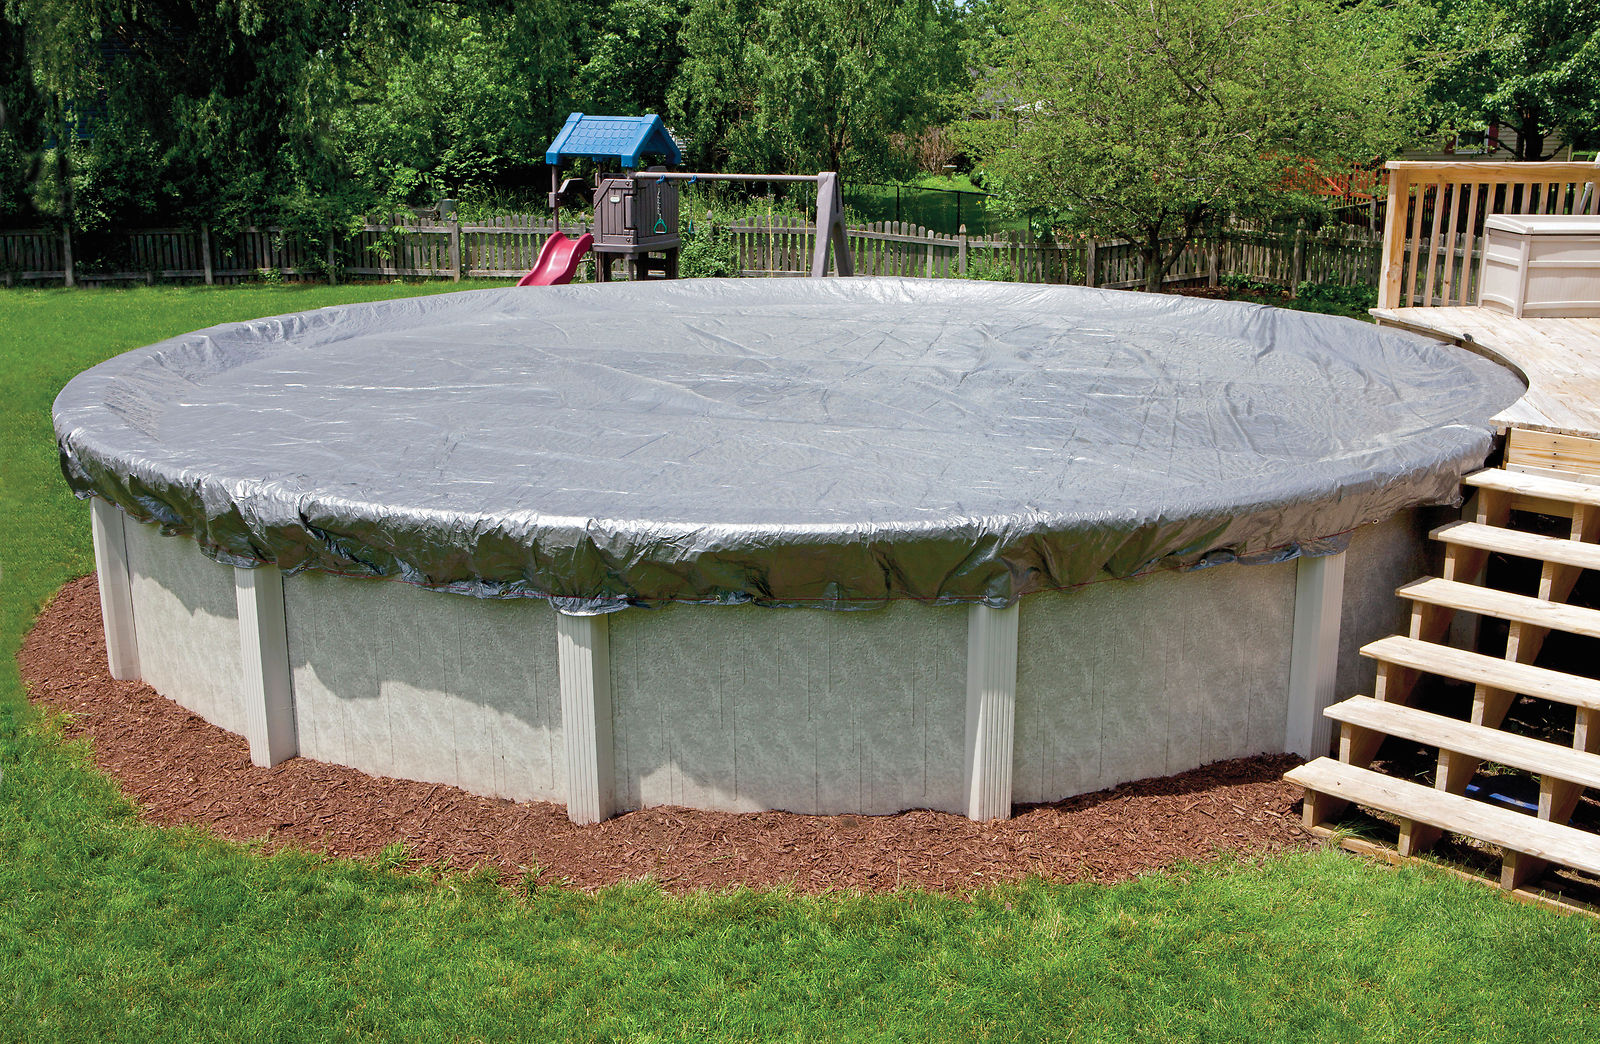 Details about 12\' ft Round Above Ground Swimming Pool Winter Cover - 16  Year Warranty